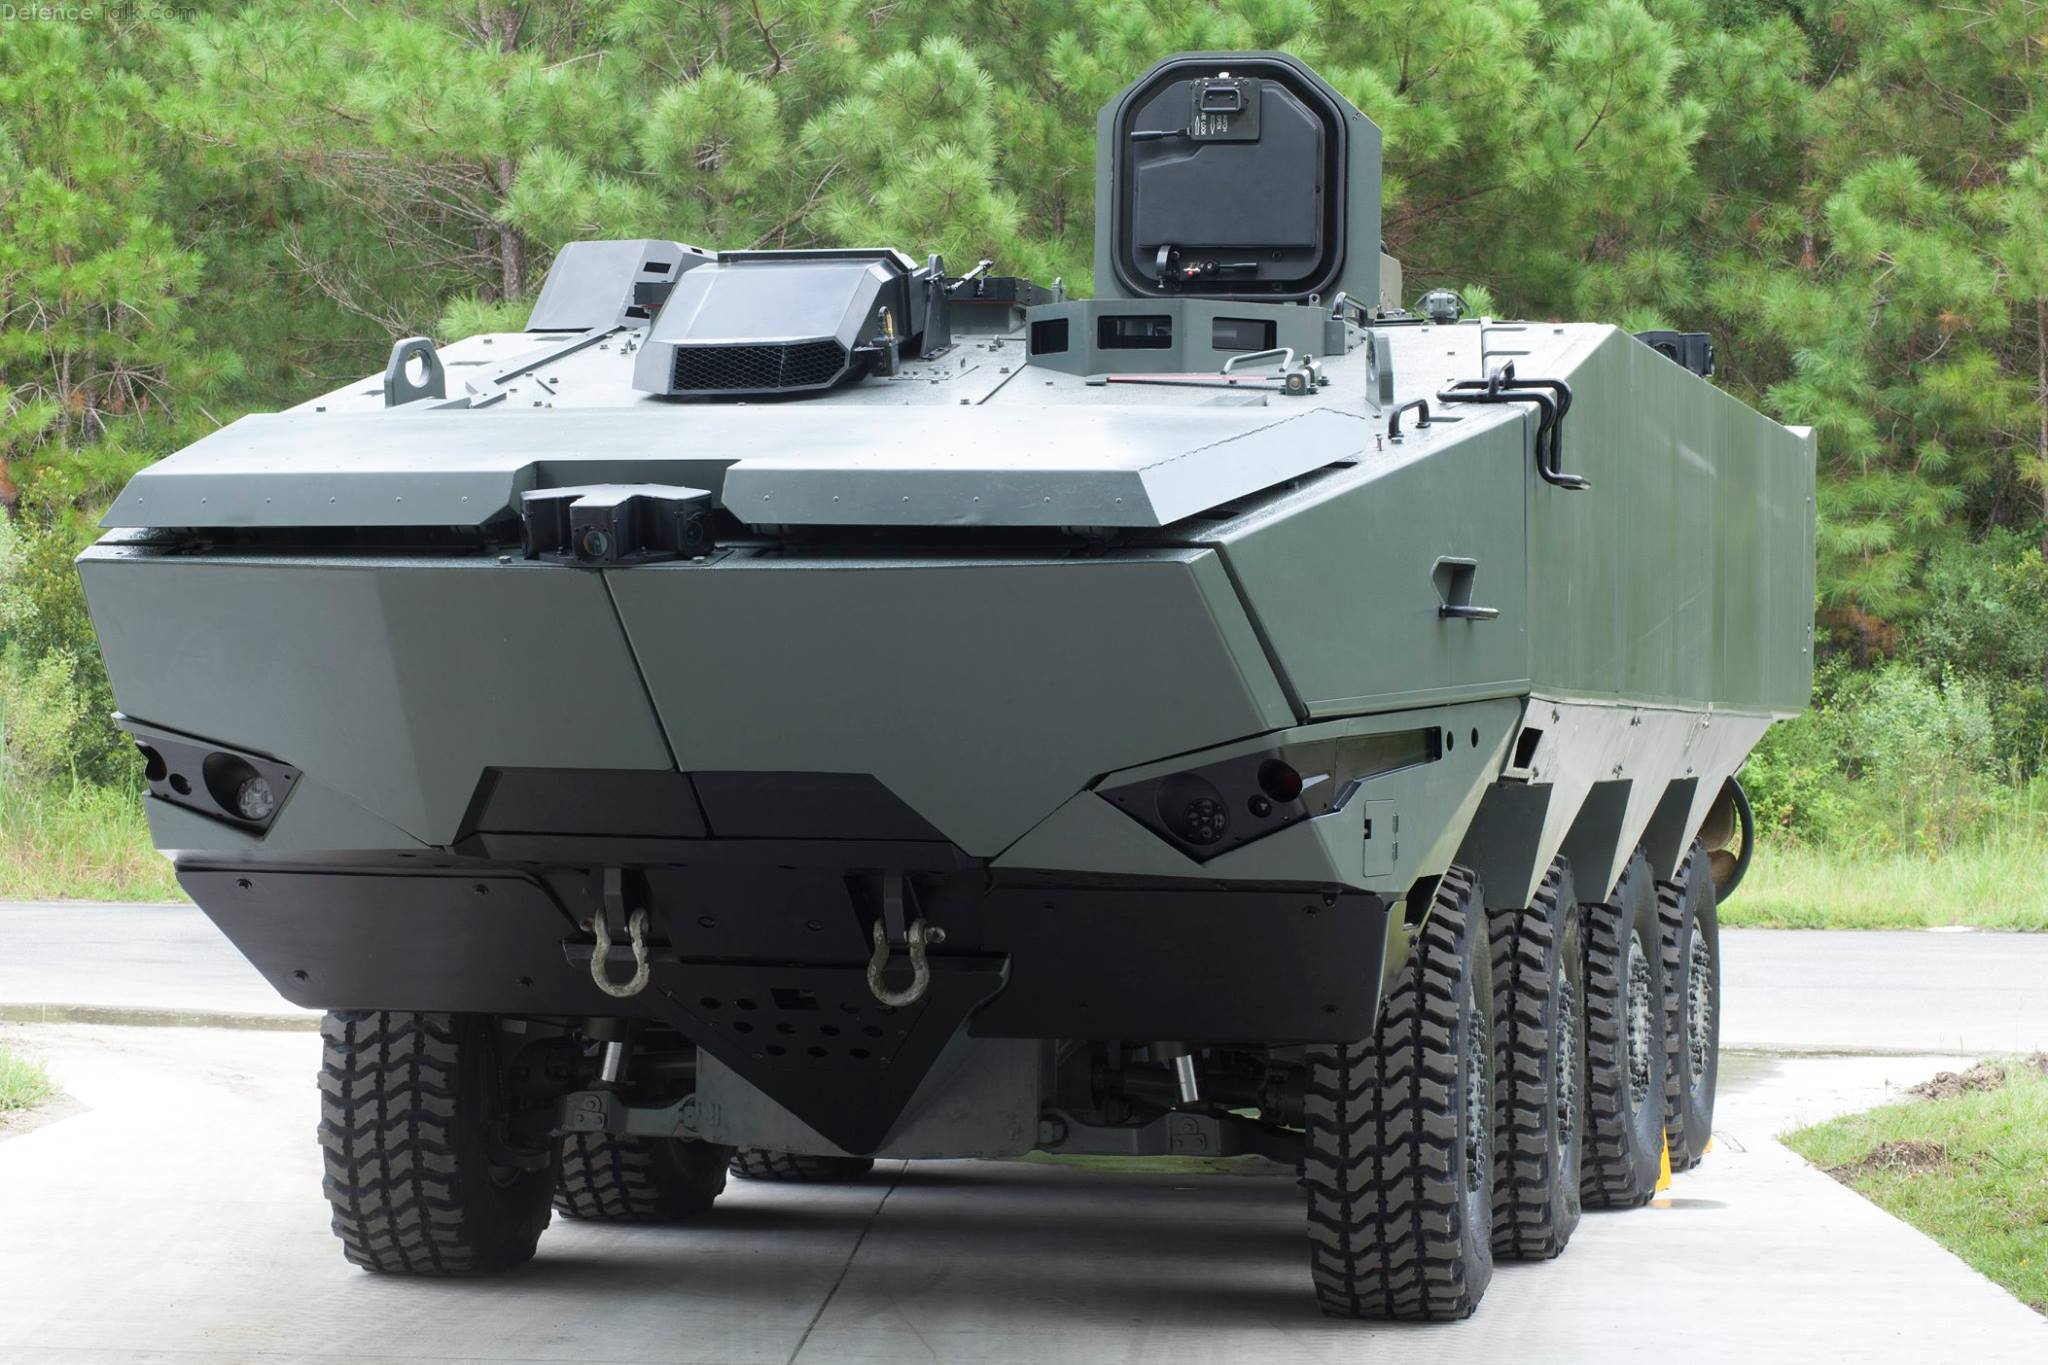 helicopter israel with Photos Of Terrex 2 Wheeled Armoured Vehicle on Pictures 10 as well 03 as well 0 7340 L 4802294 00 together with Pictures 10 as well World War Z.